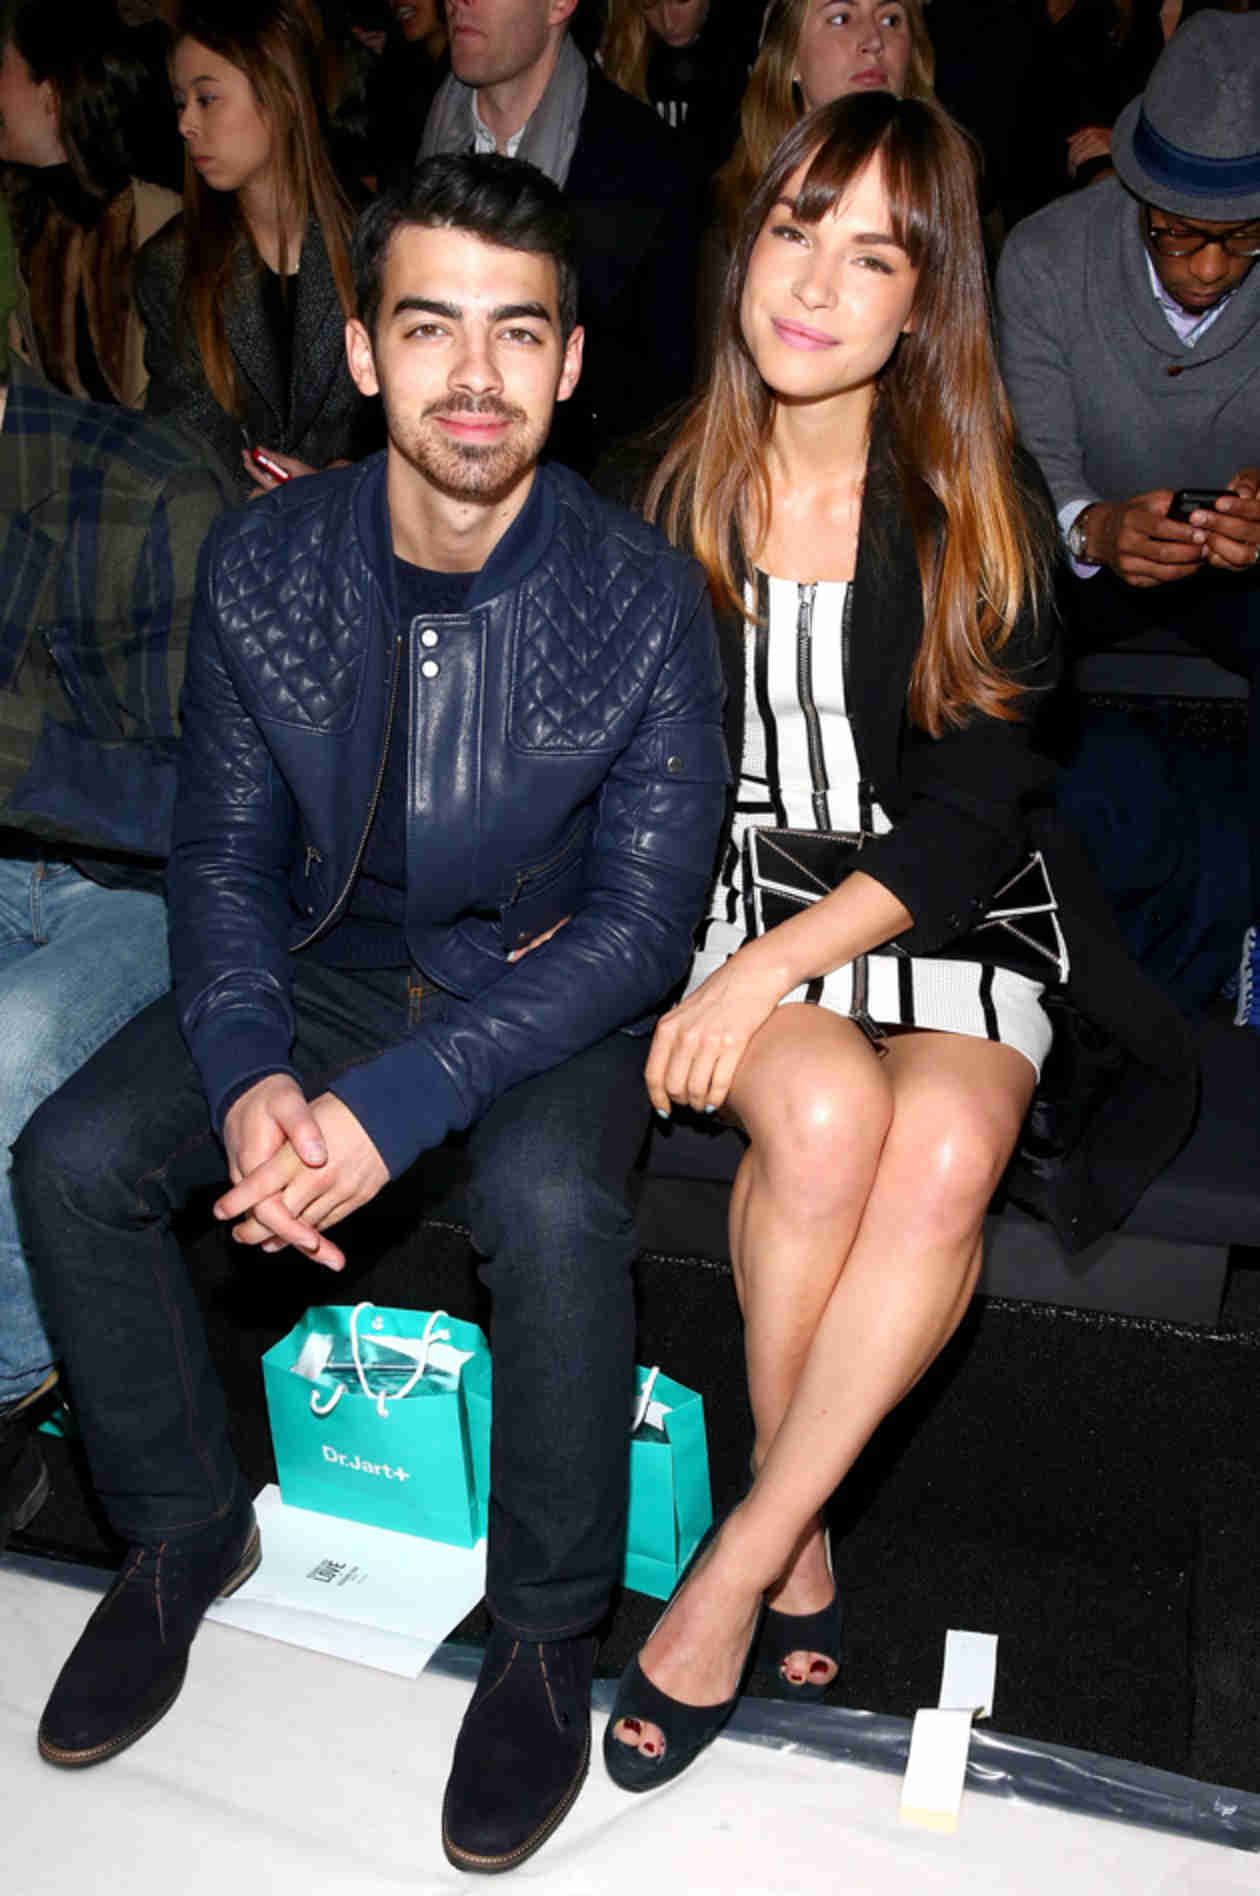 Joe Jonas and Blanda Eggenschwiler Split After Nearly Two Years Together (VIDEO)